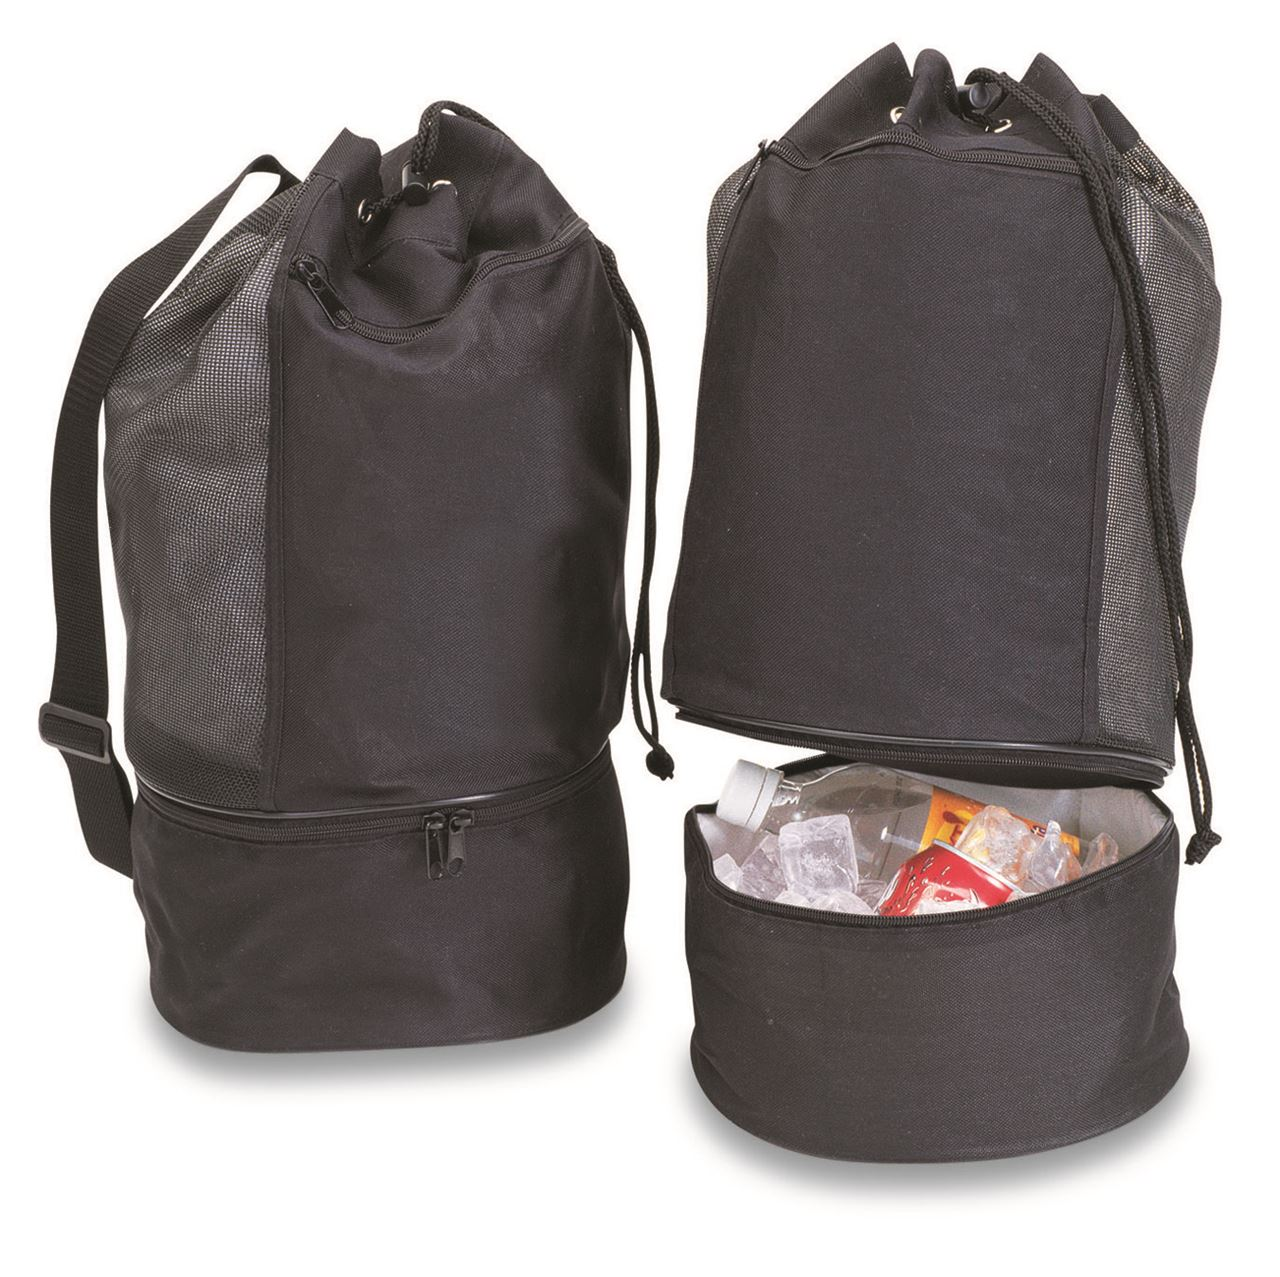 Picture of DEBCO Beach Tote/Cooler Bag